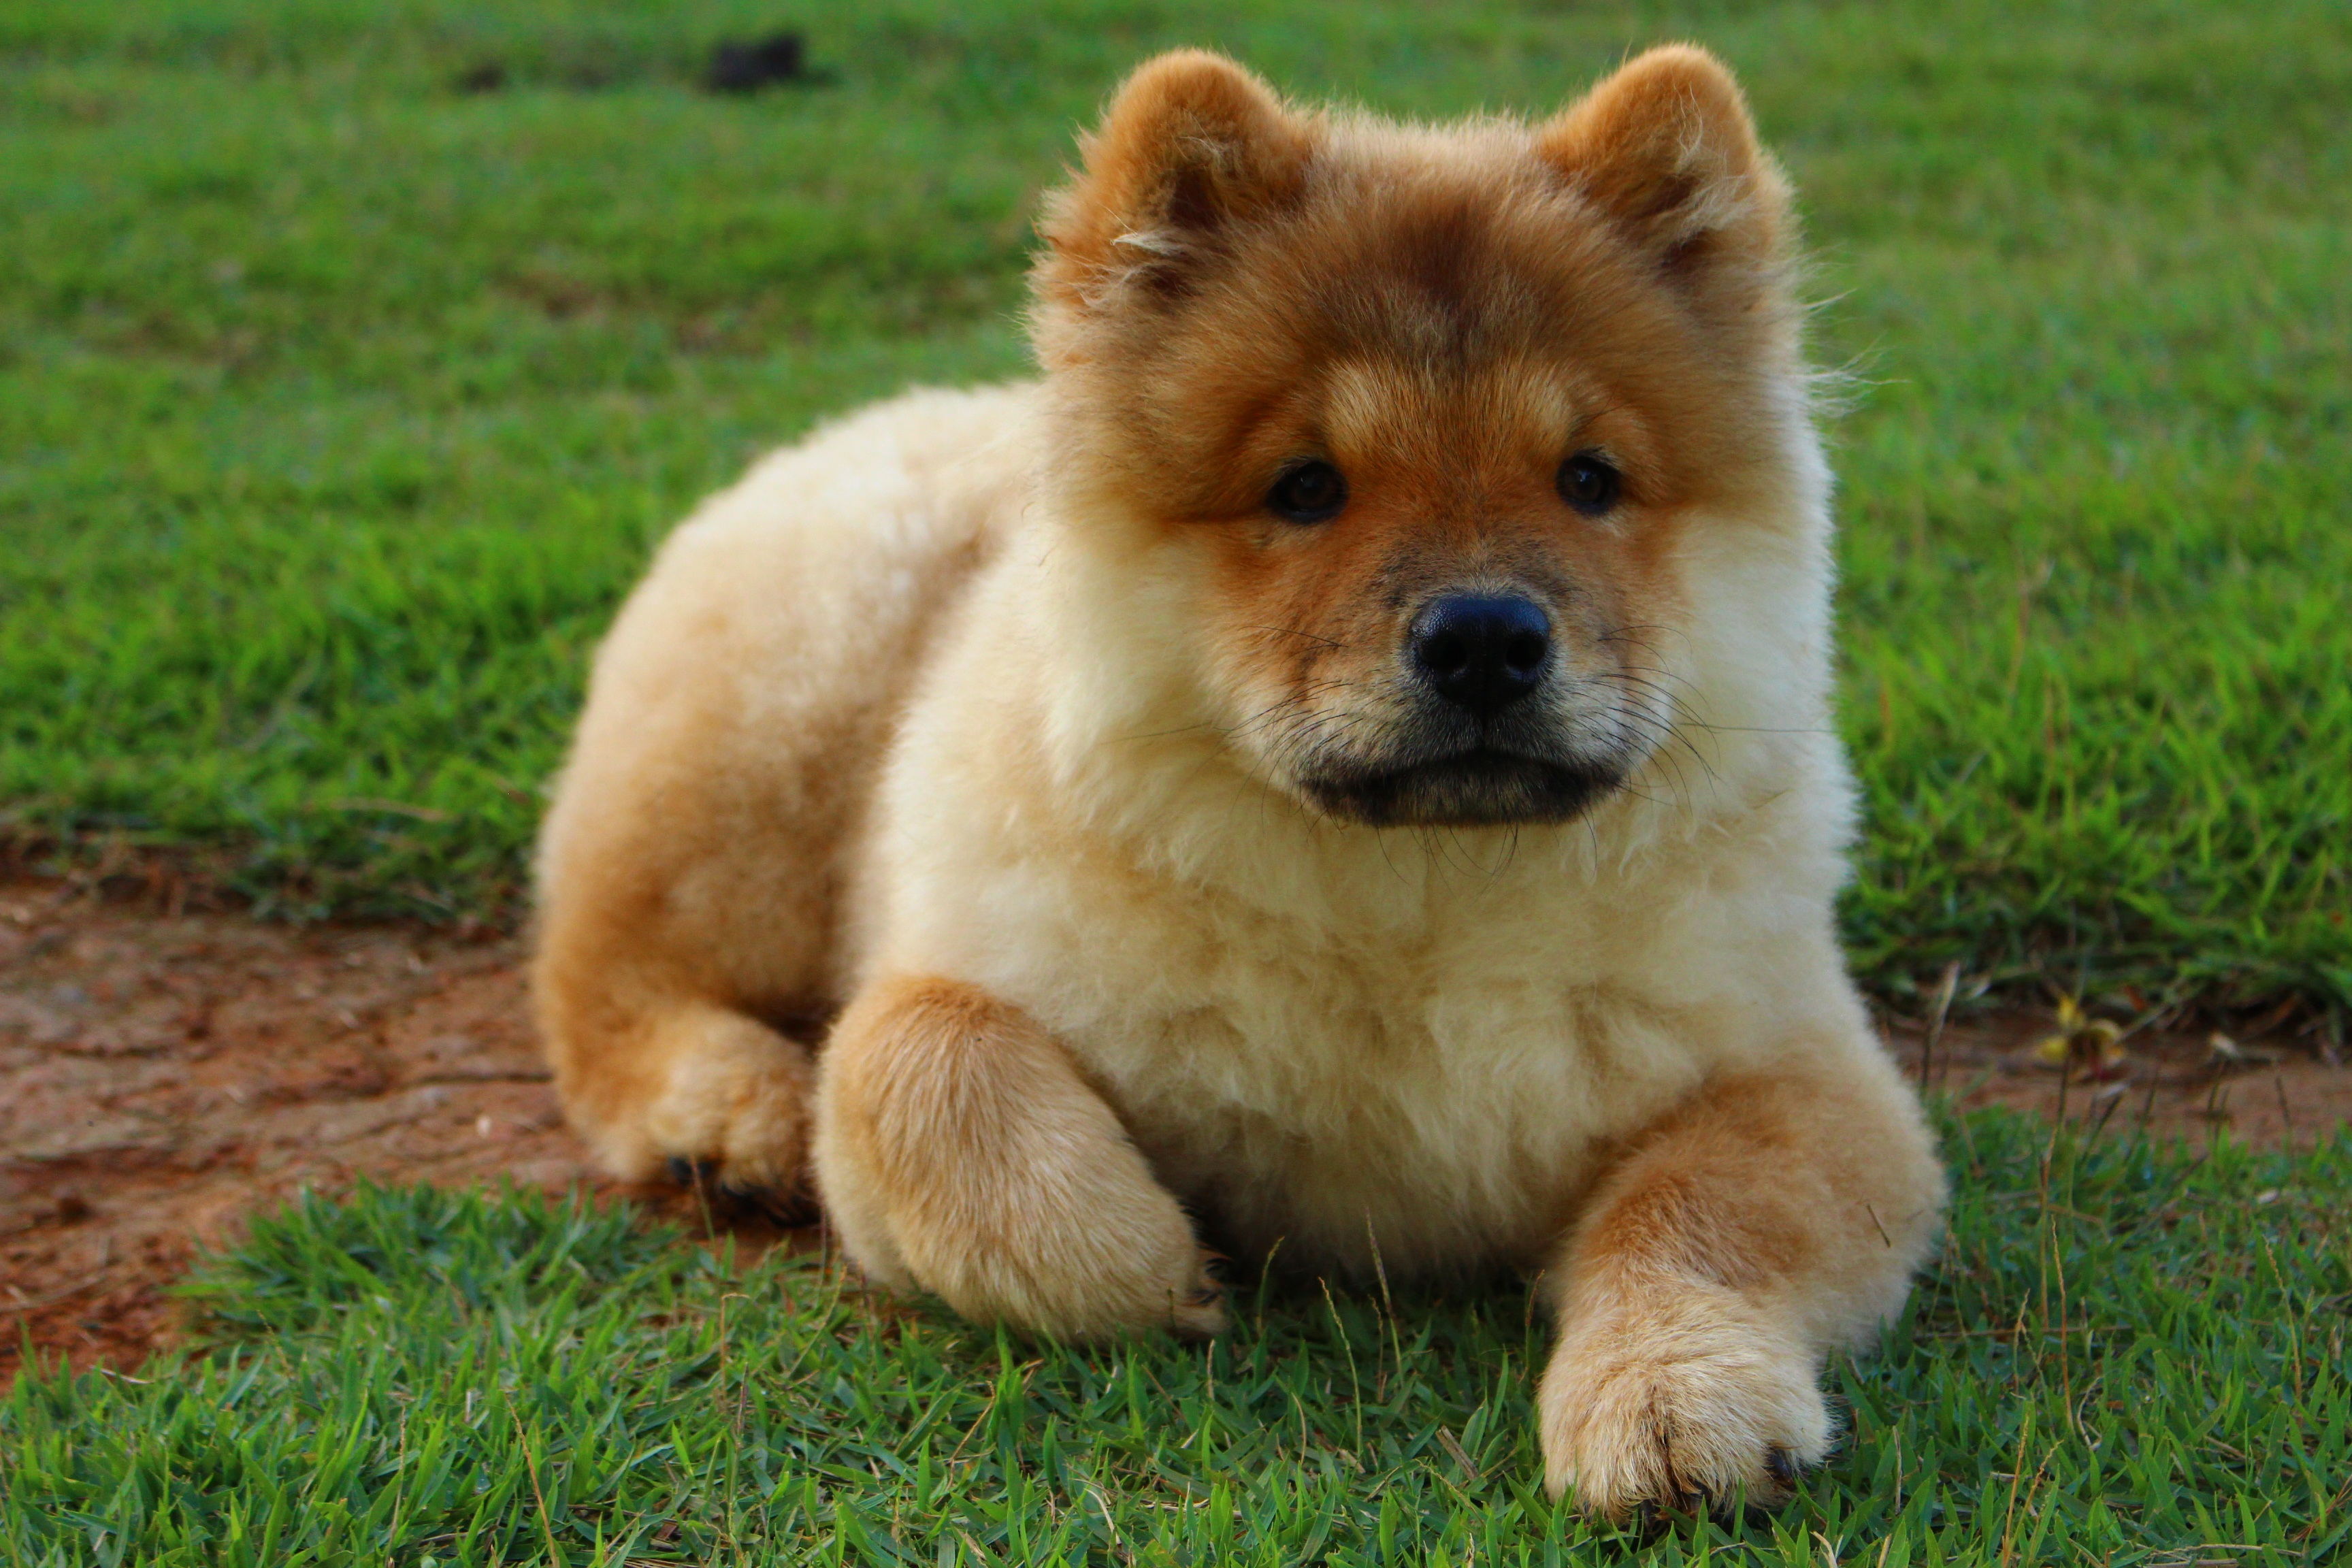 89547 download wallpaper Animals, Chow Chow, Dog, Puppy, To Lie Down, Lie screensavers and pictures for free